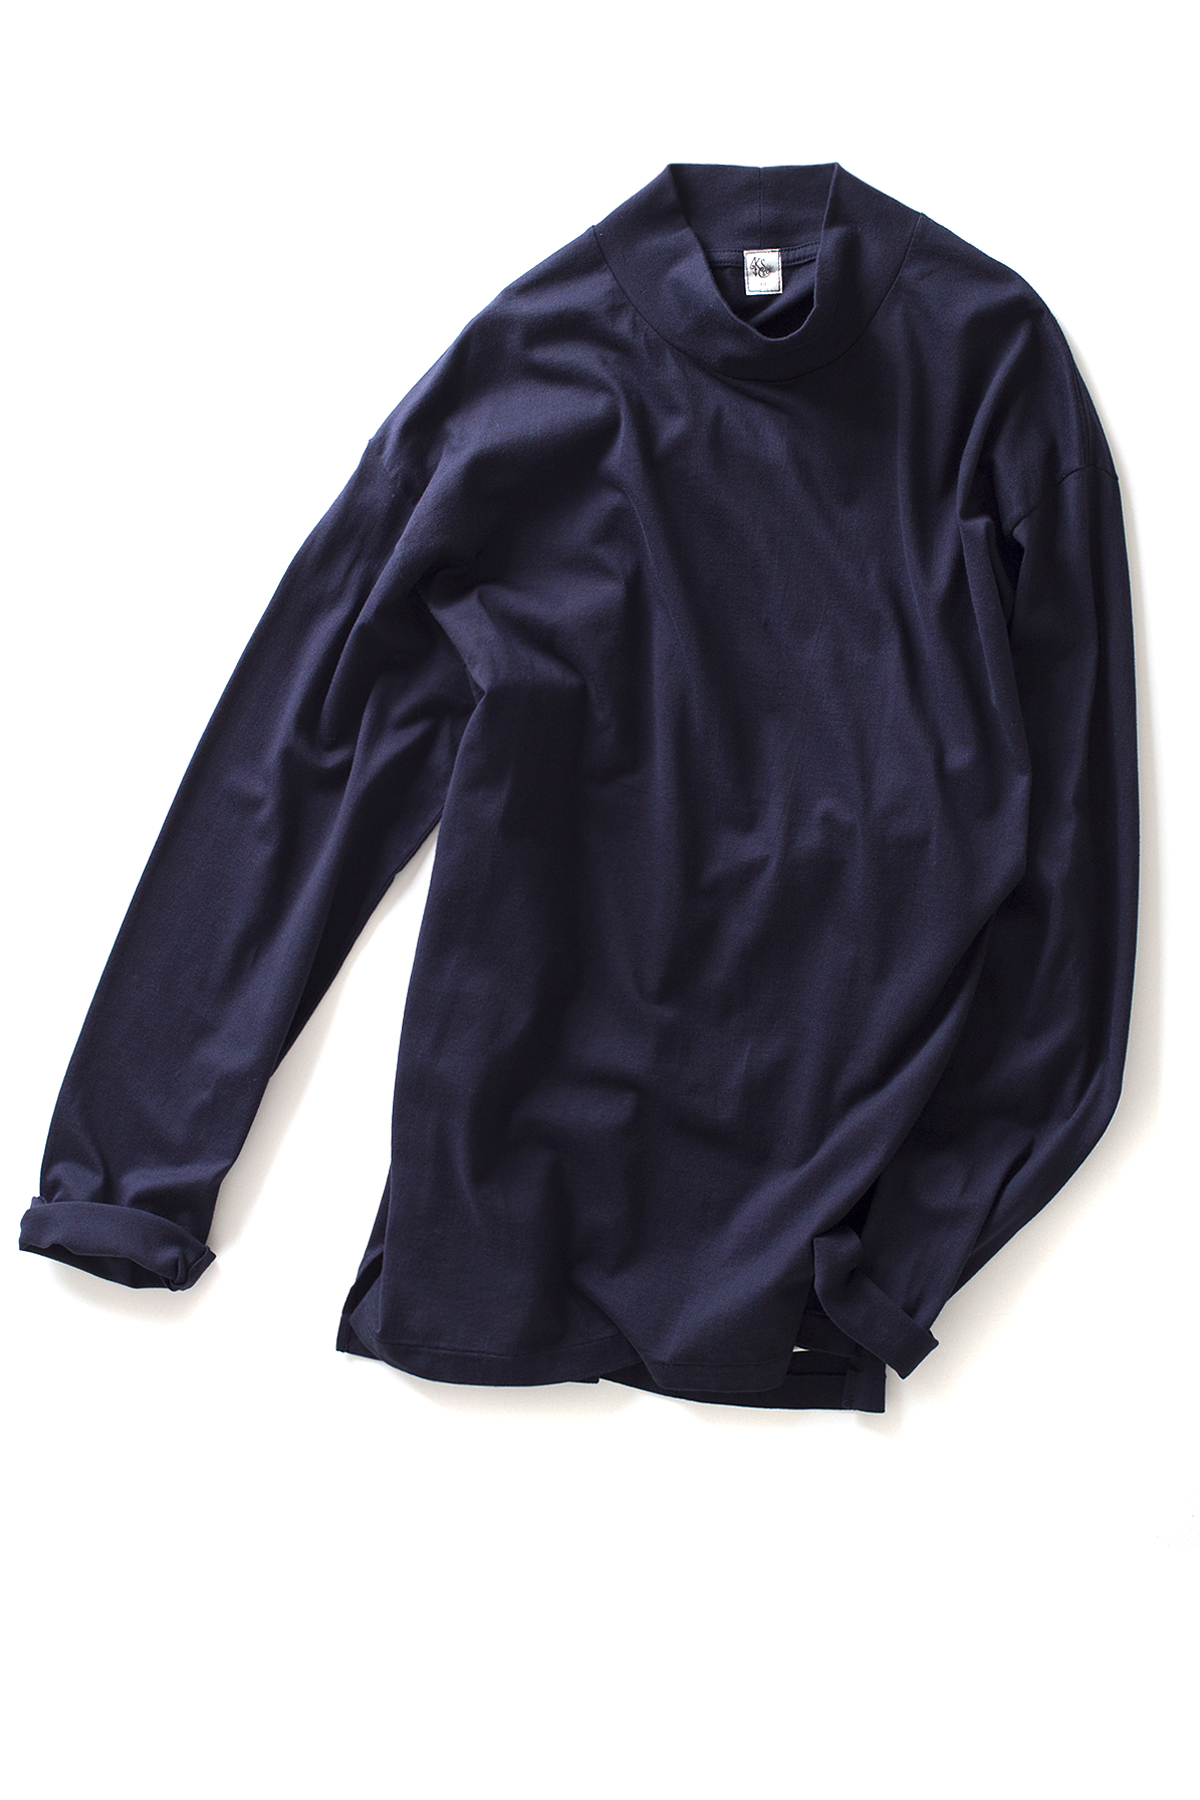 Kaptain Sunshine : Navy Yard Long Sleeve Tee (Navy)